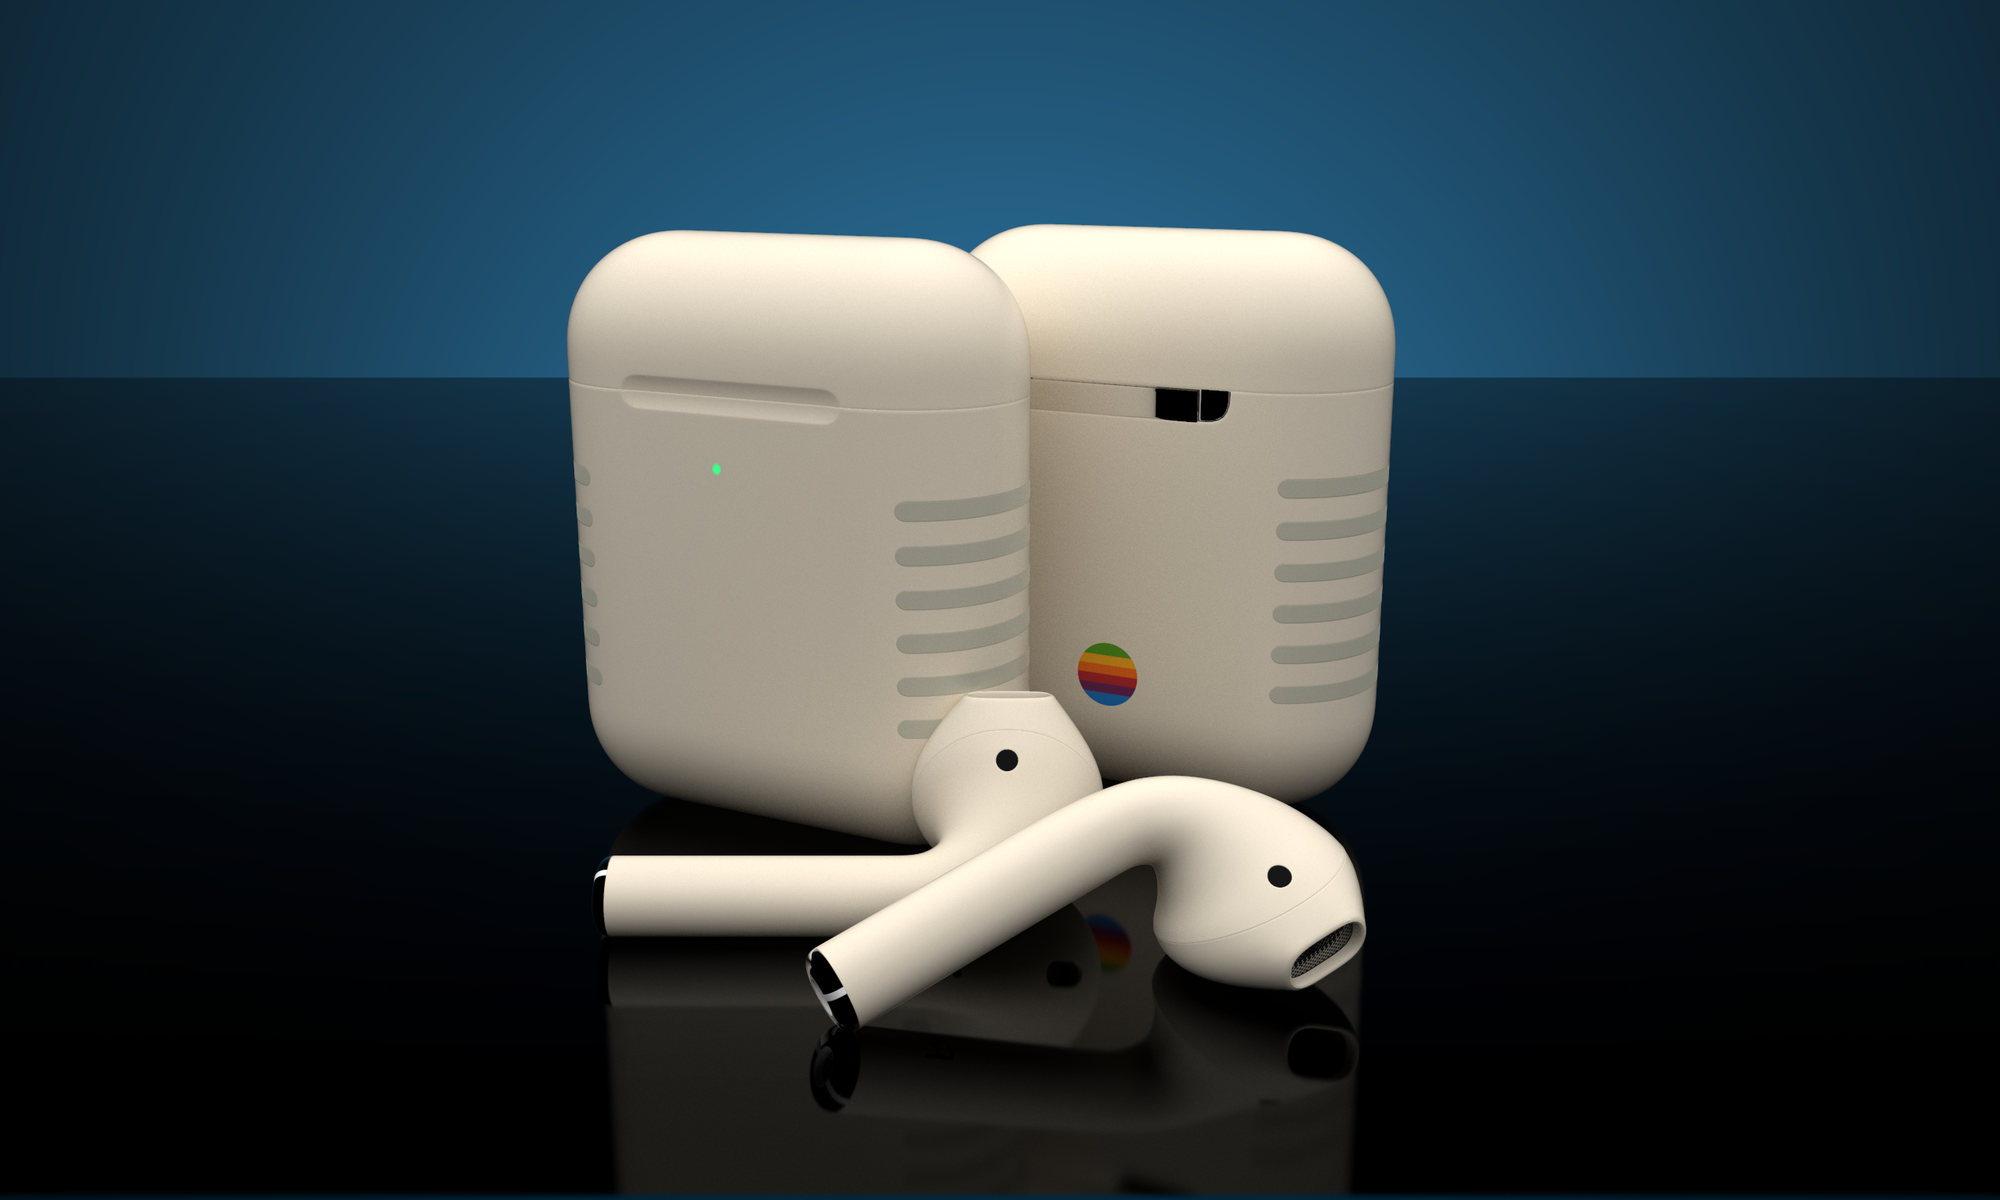 Custom Airpods Retro Limited Edition